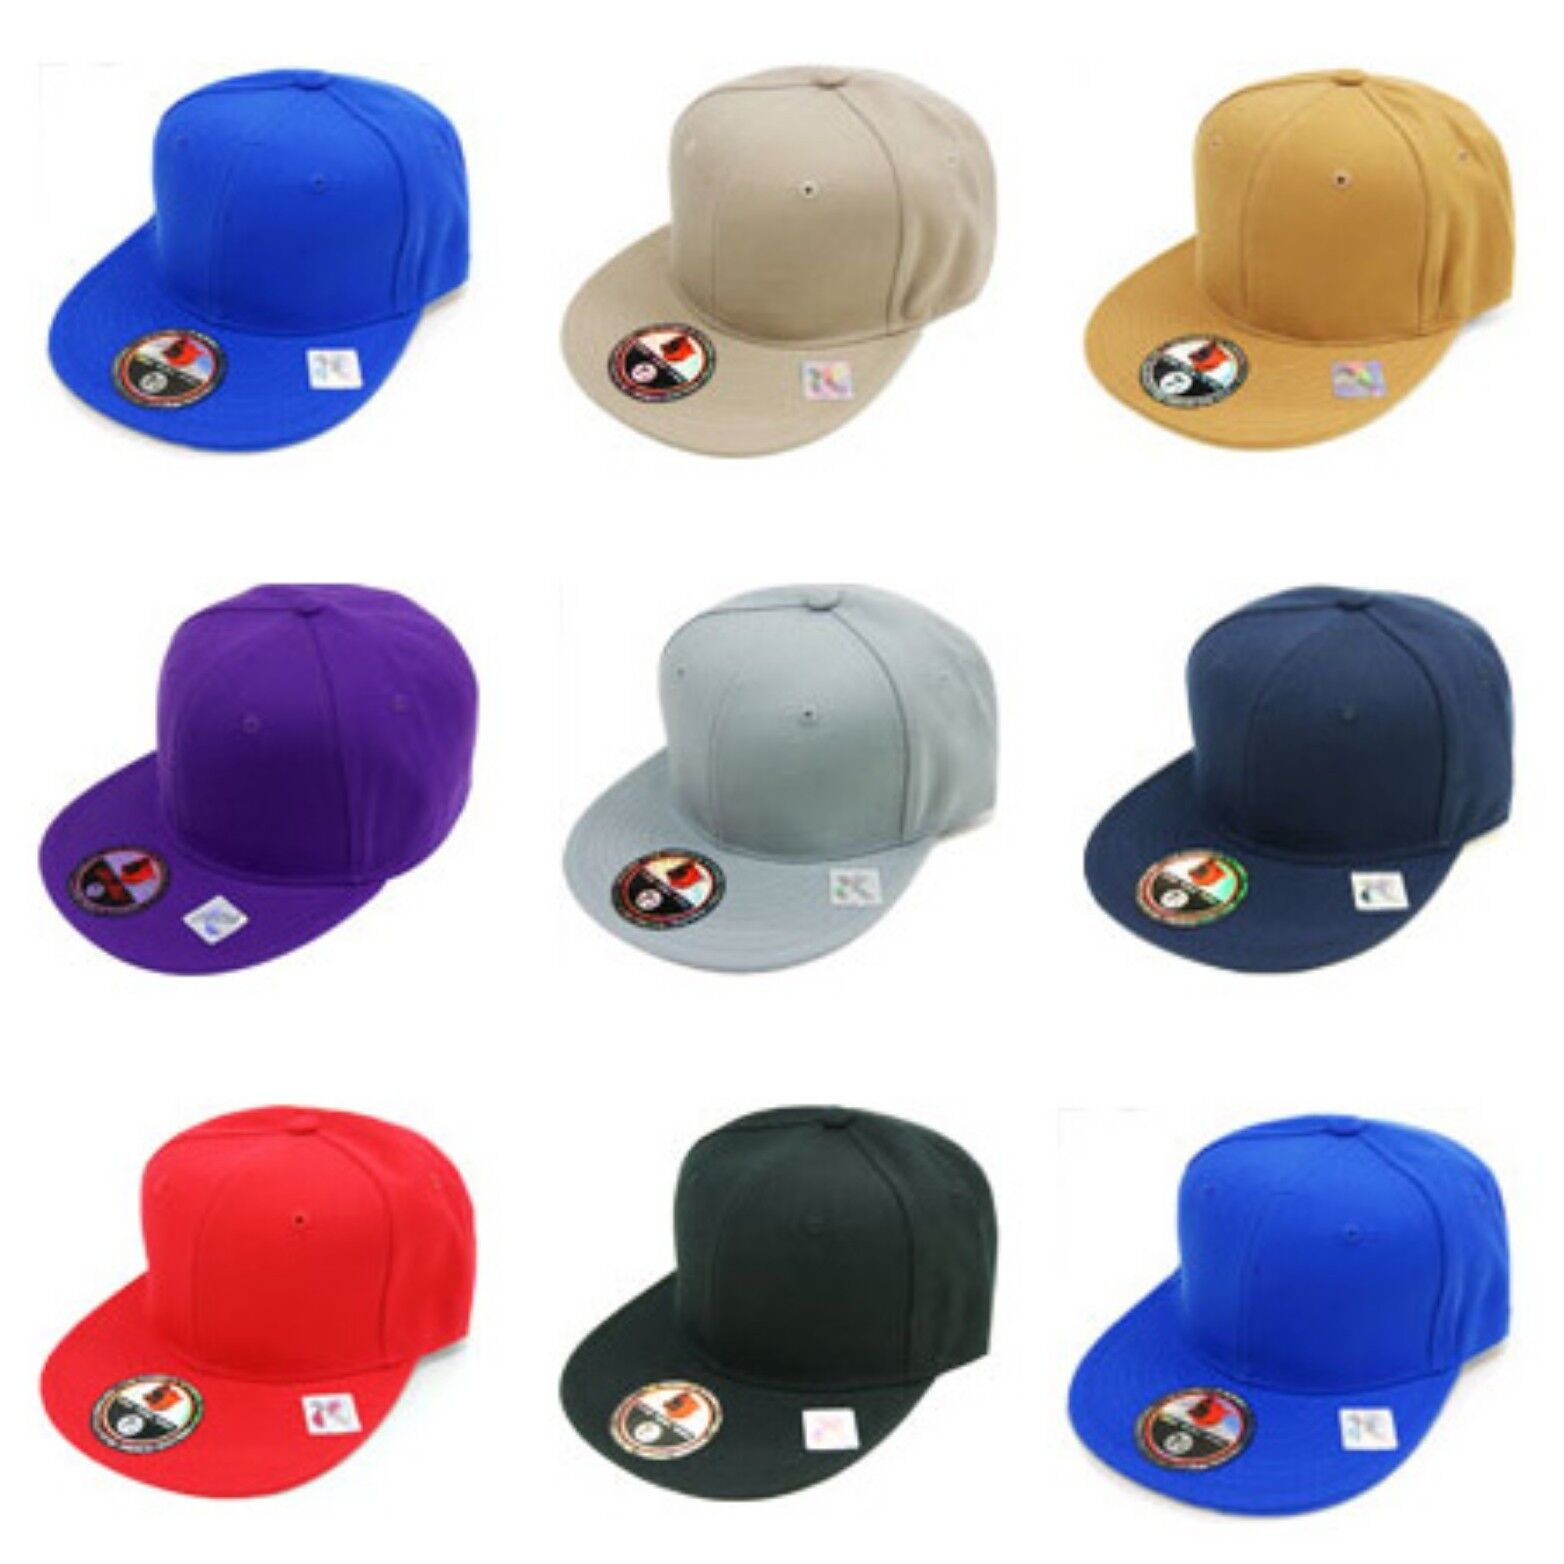 Moe. Paper Dragon Fitted Hat sizes 7 up to to to 8 made to order 17 hat colors 838c4d